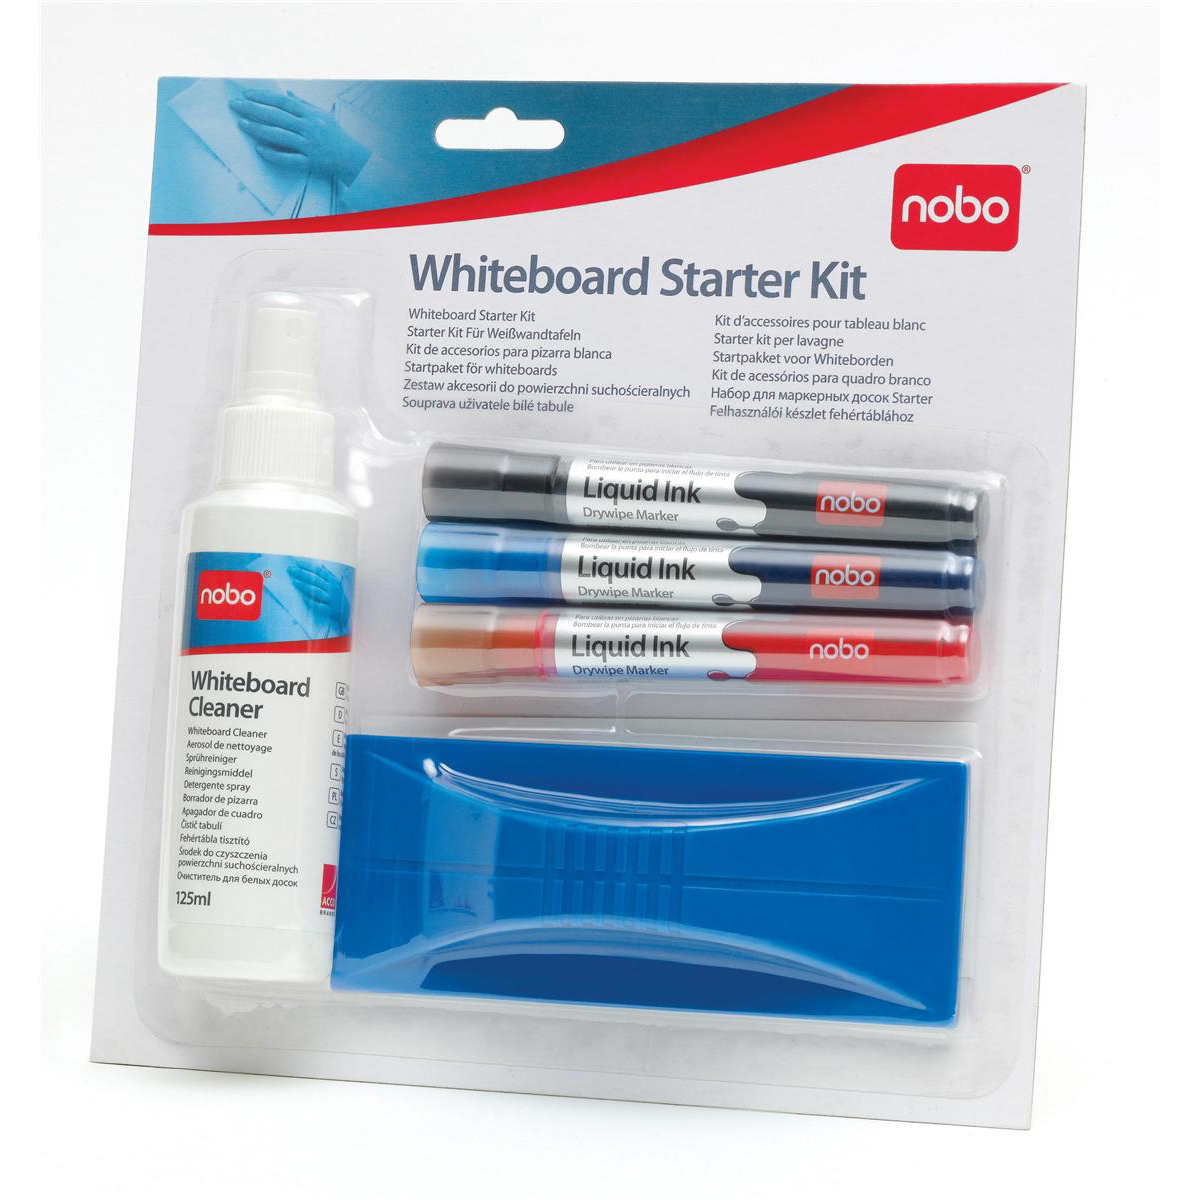 Pen Tray Nobo Whiteboard Starter Kit 3 Asst Drywipe Markers/Eraser/Refills/125ml Cleaning Fluid Spray Ref 34438861